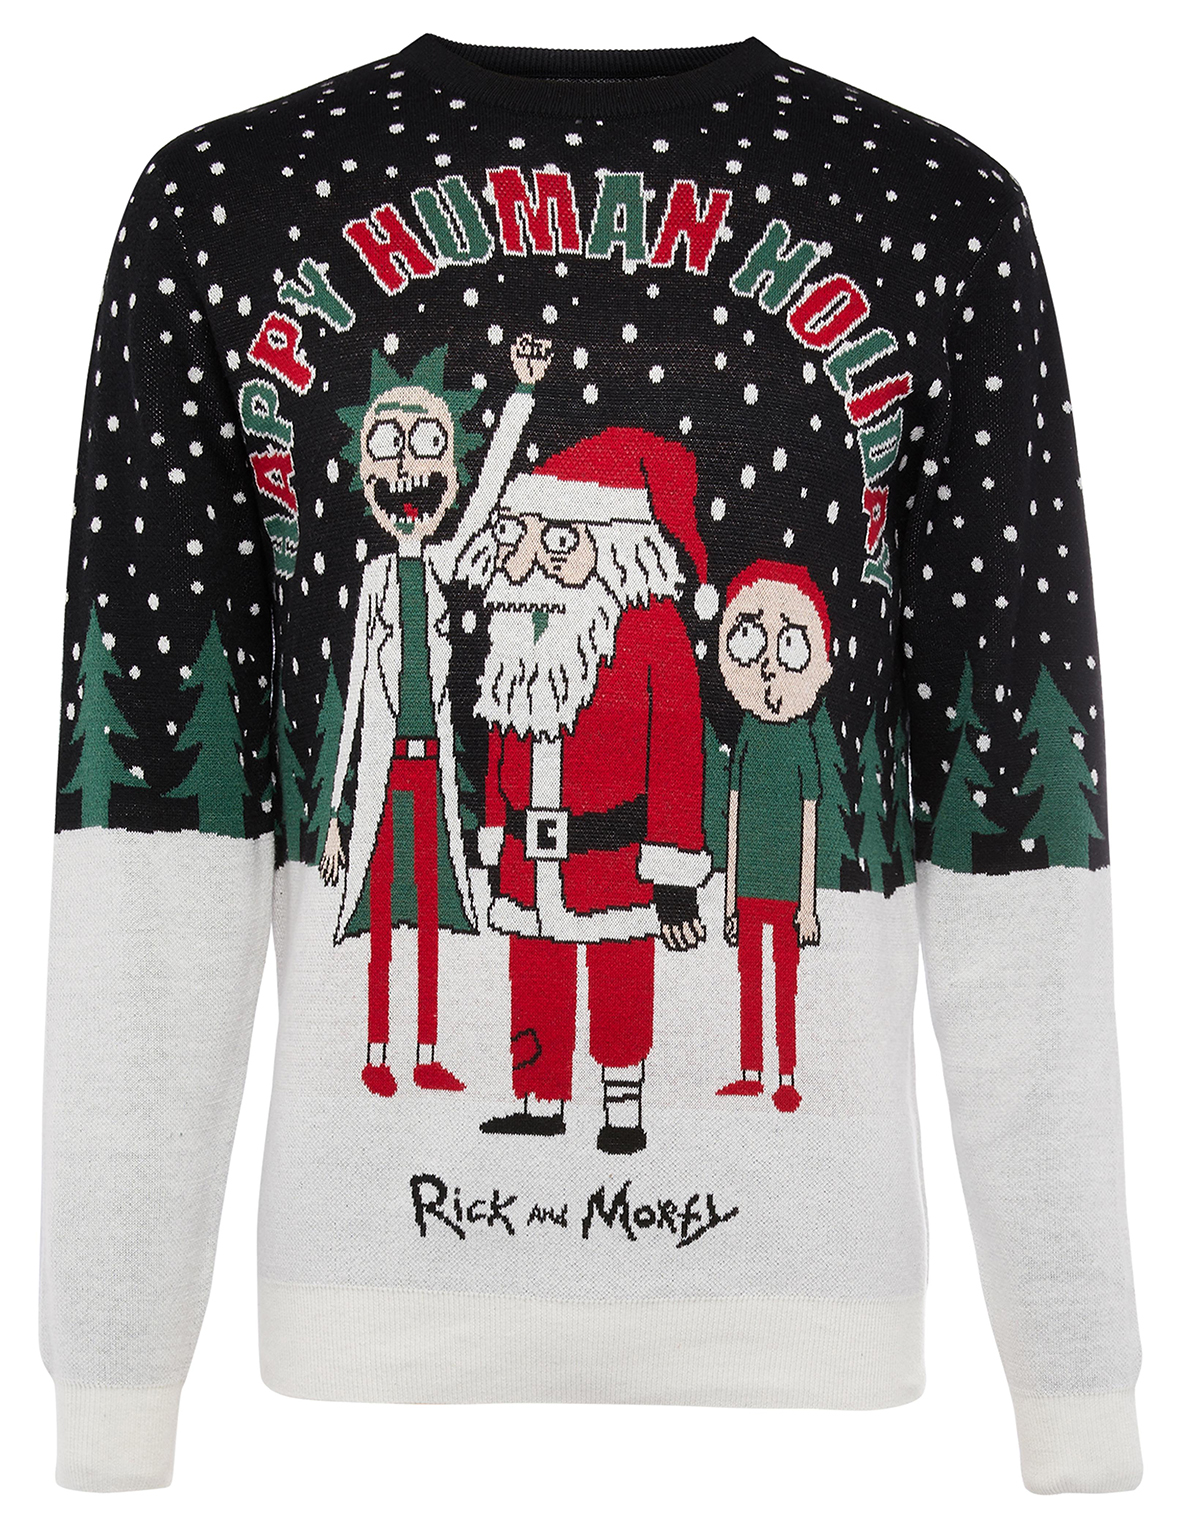 web_primark_kimball-0485807-01-rick-and-morty-xmas-jumper_5fc8fa05a86d0.jpg